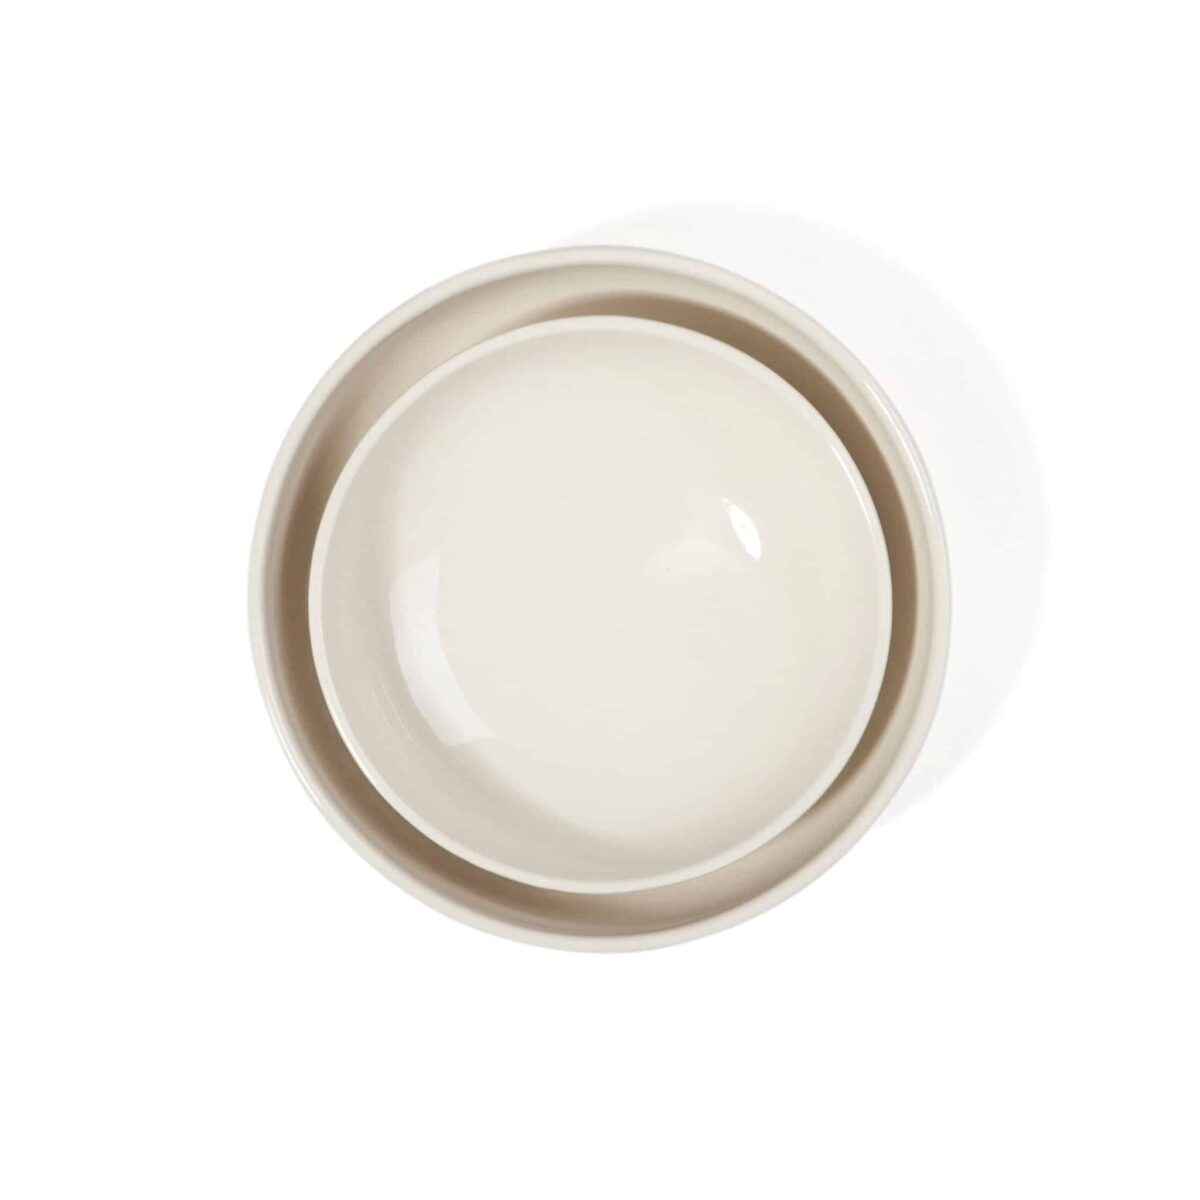 Another-country-pottery-little-bowl-natural-004